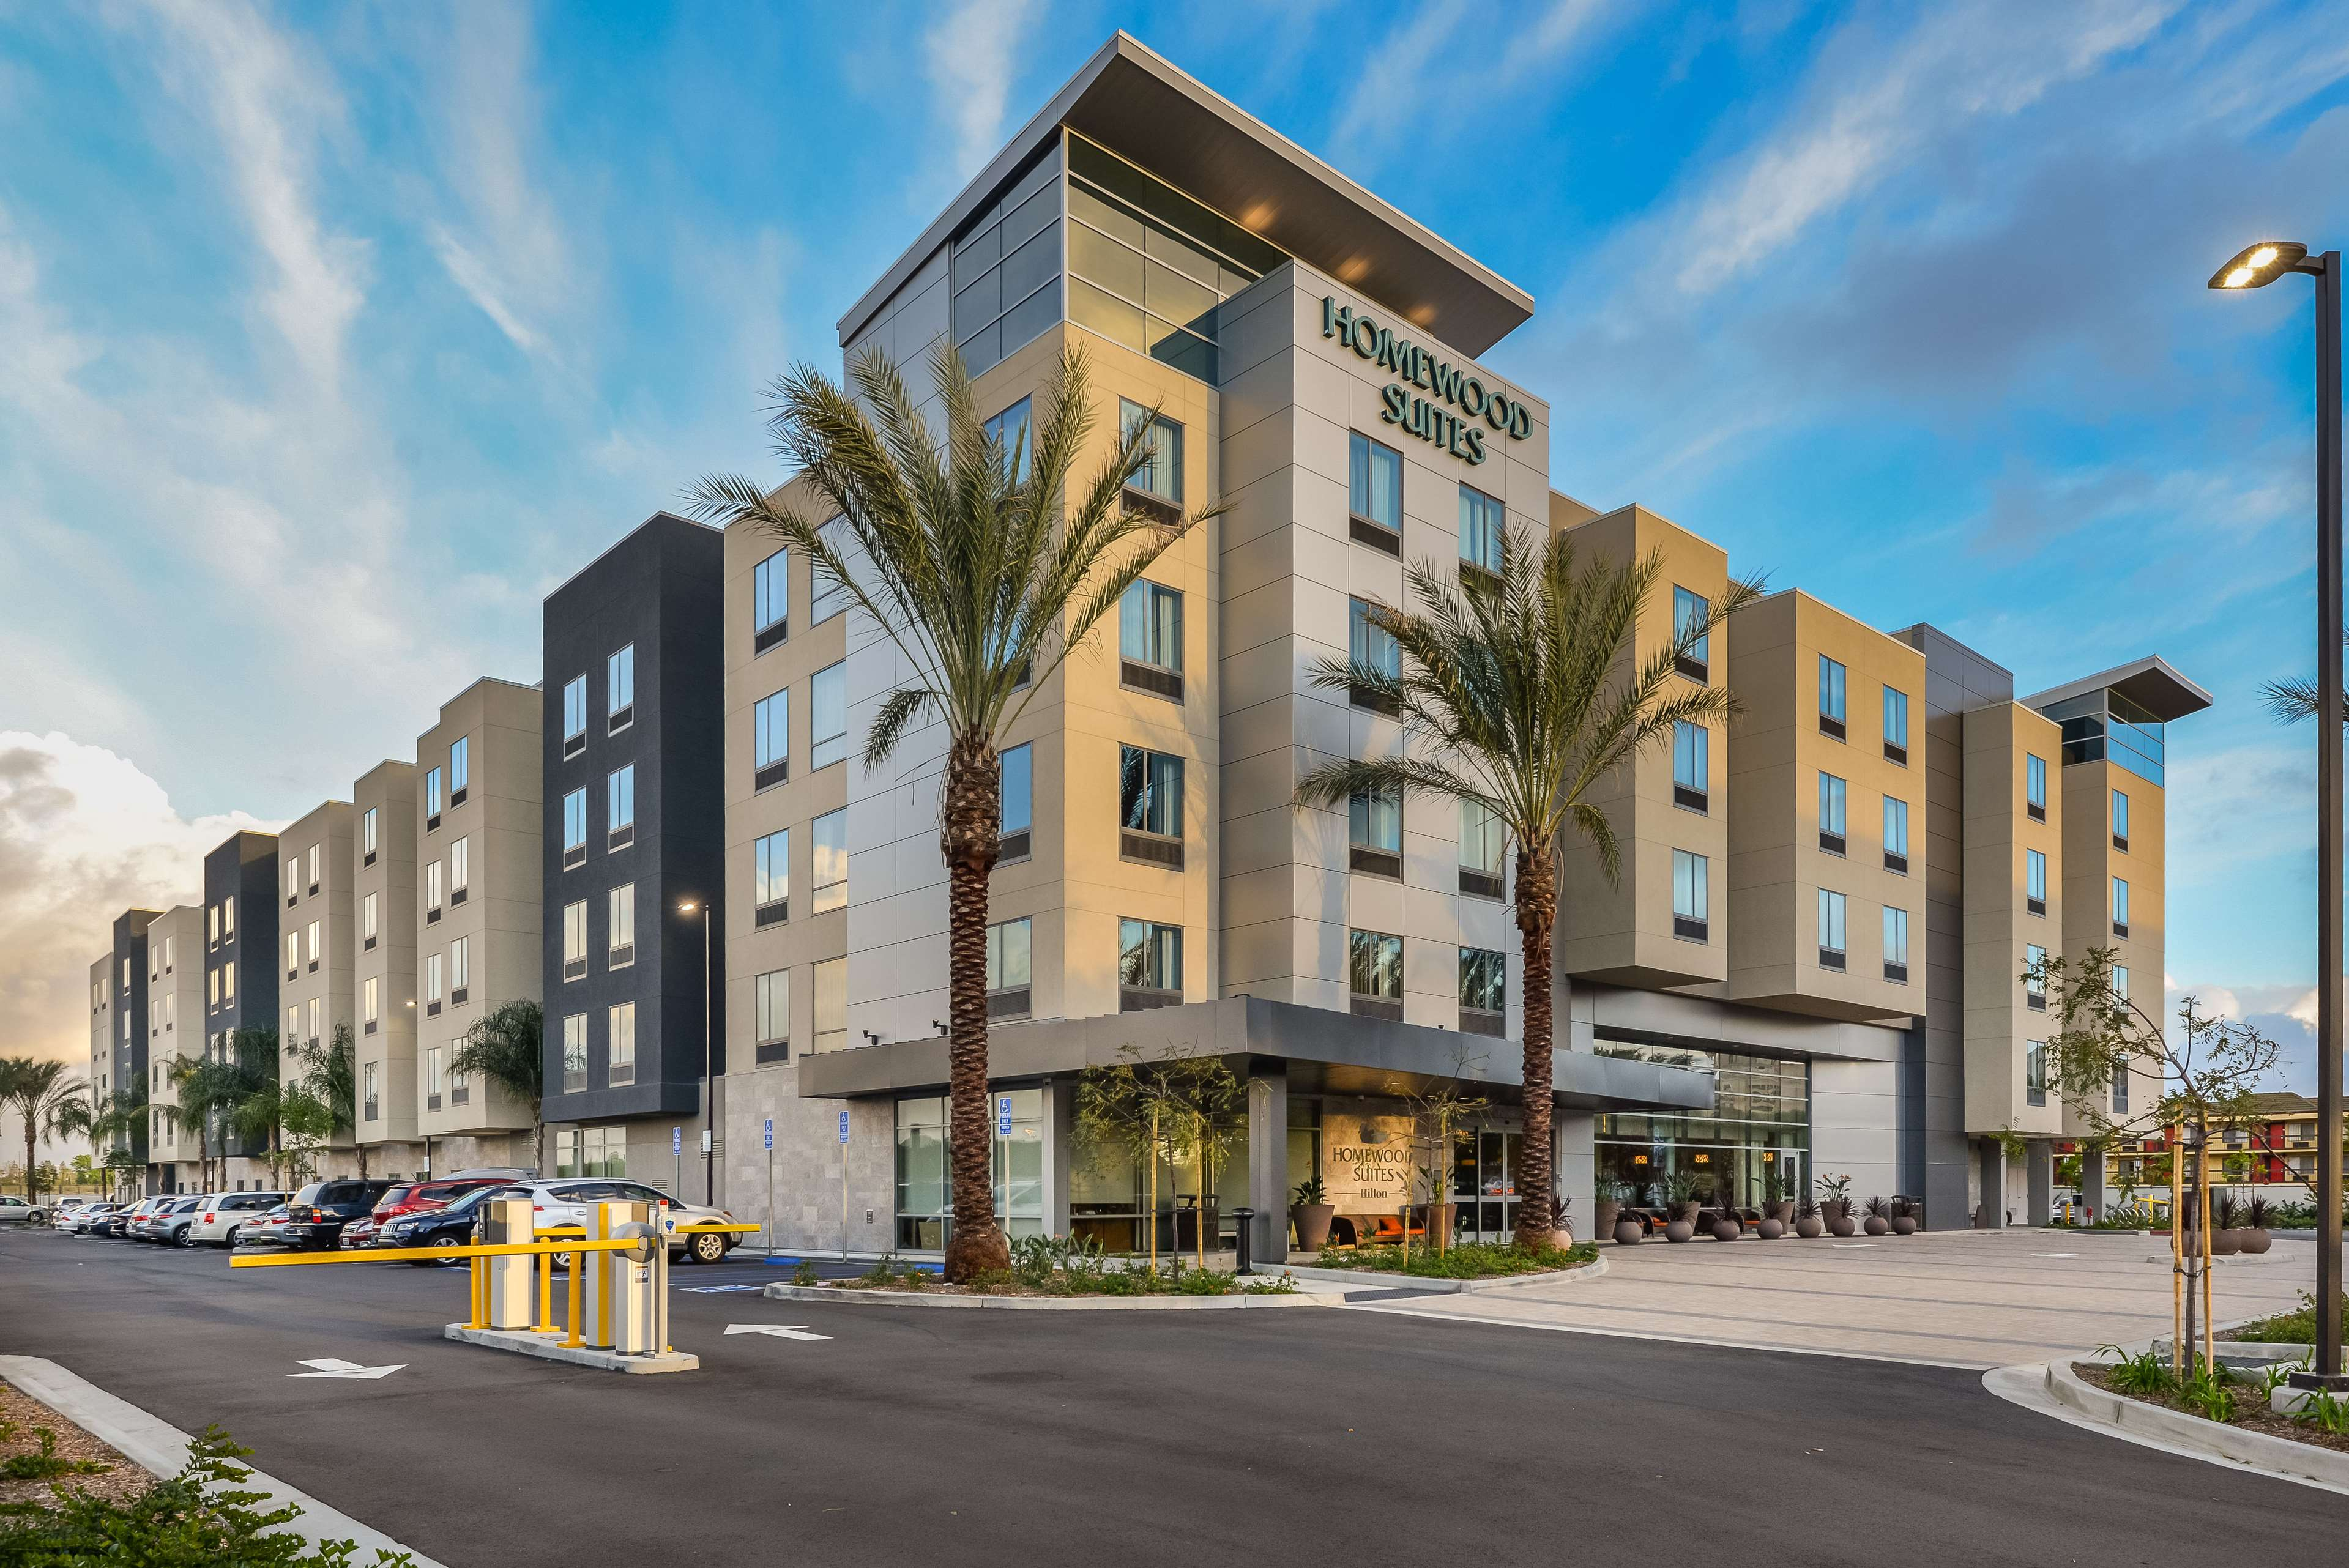 Homewood Suites by Hilton Anaheim Resort - Convention Center image 0